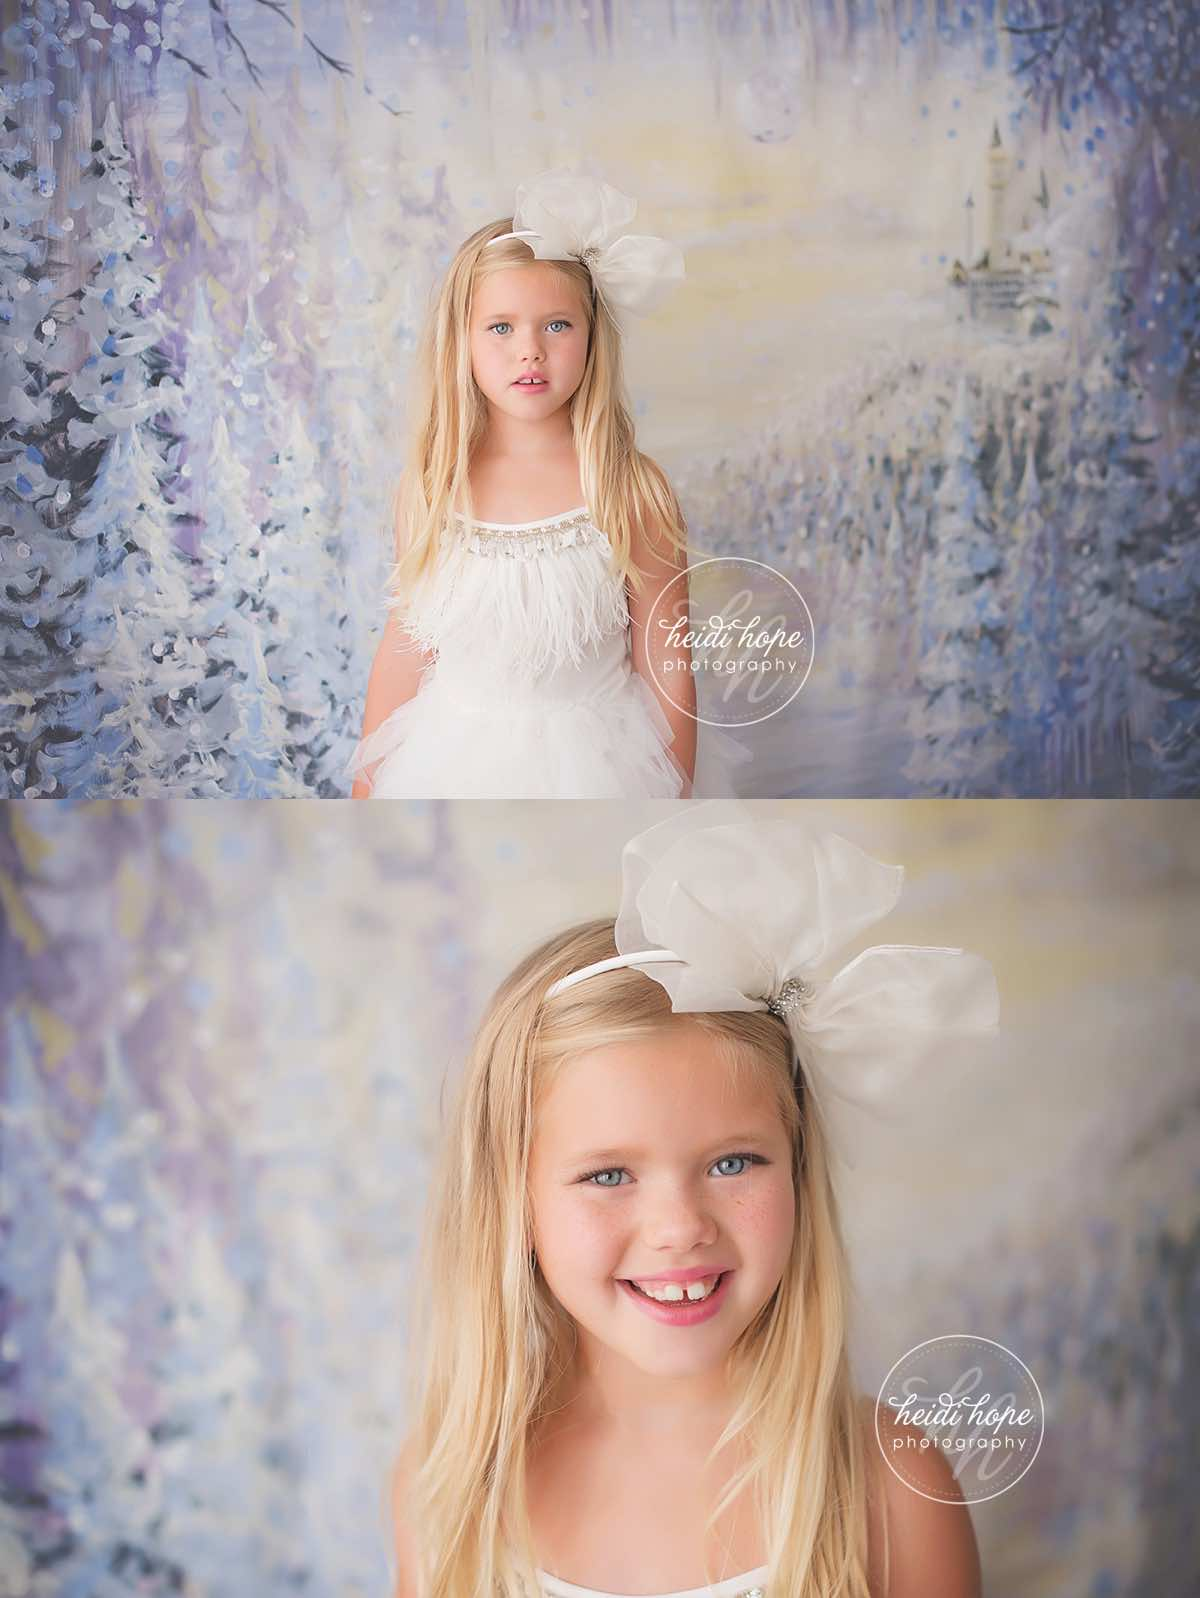 heidi hope backdrop frozen winter wonderland mini session with tutudumonde and snow 2